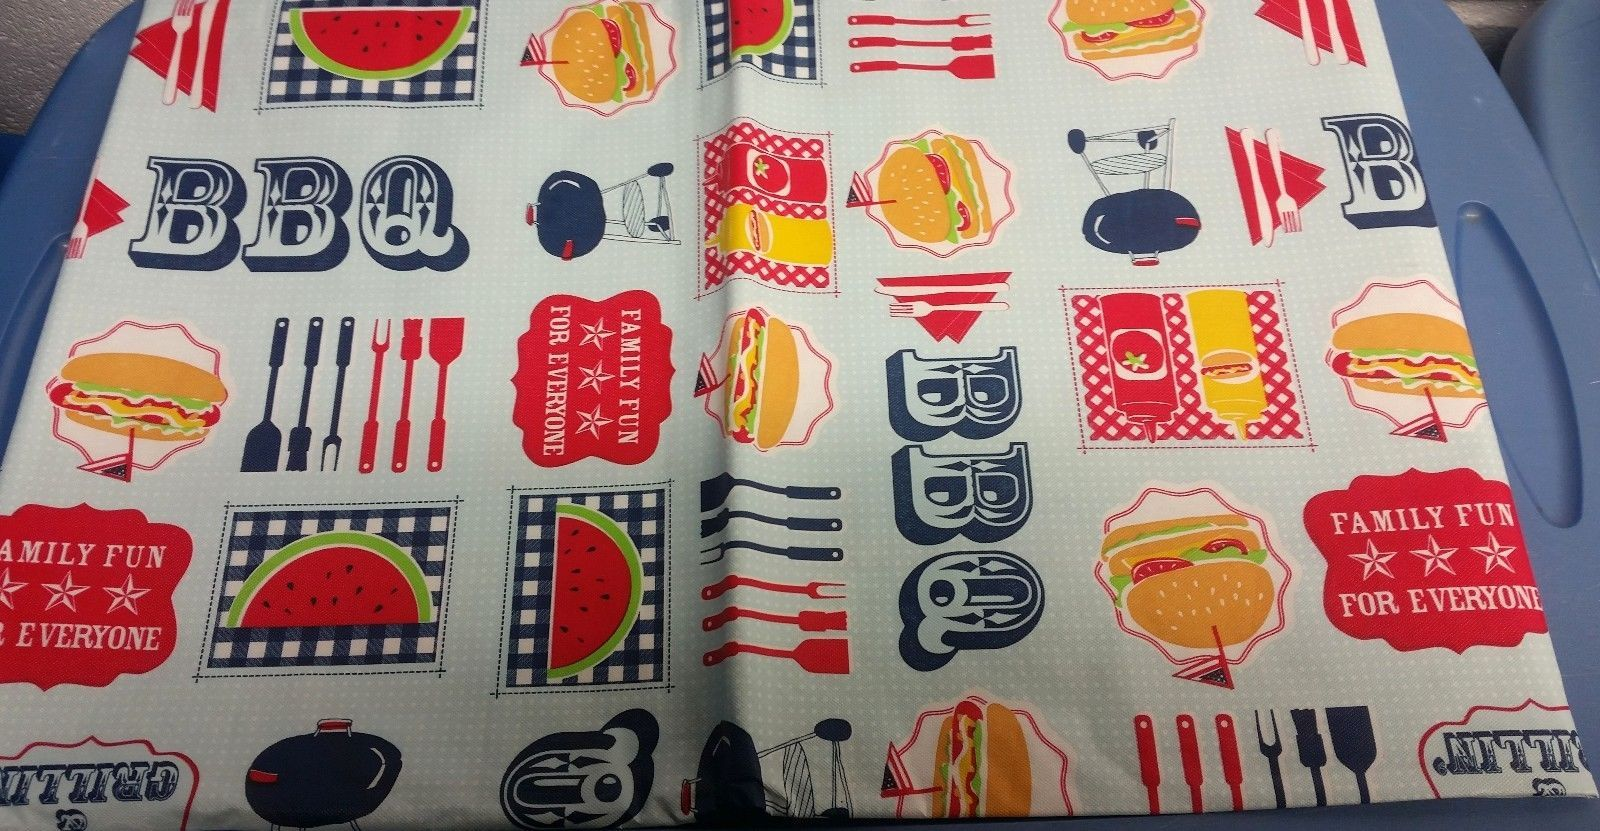 """FLANNEL BACK VINYL TABLECLOTH 52"""" x 70"""", BBQ, FAMILY FUN FOR EVERYONE by AP - $15.83"""